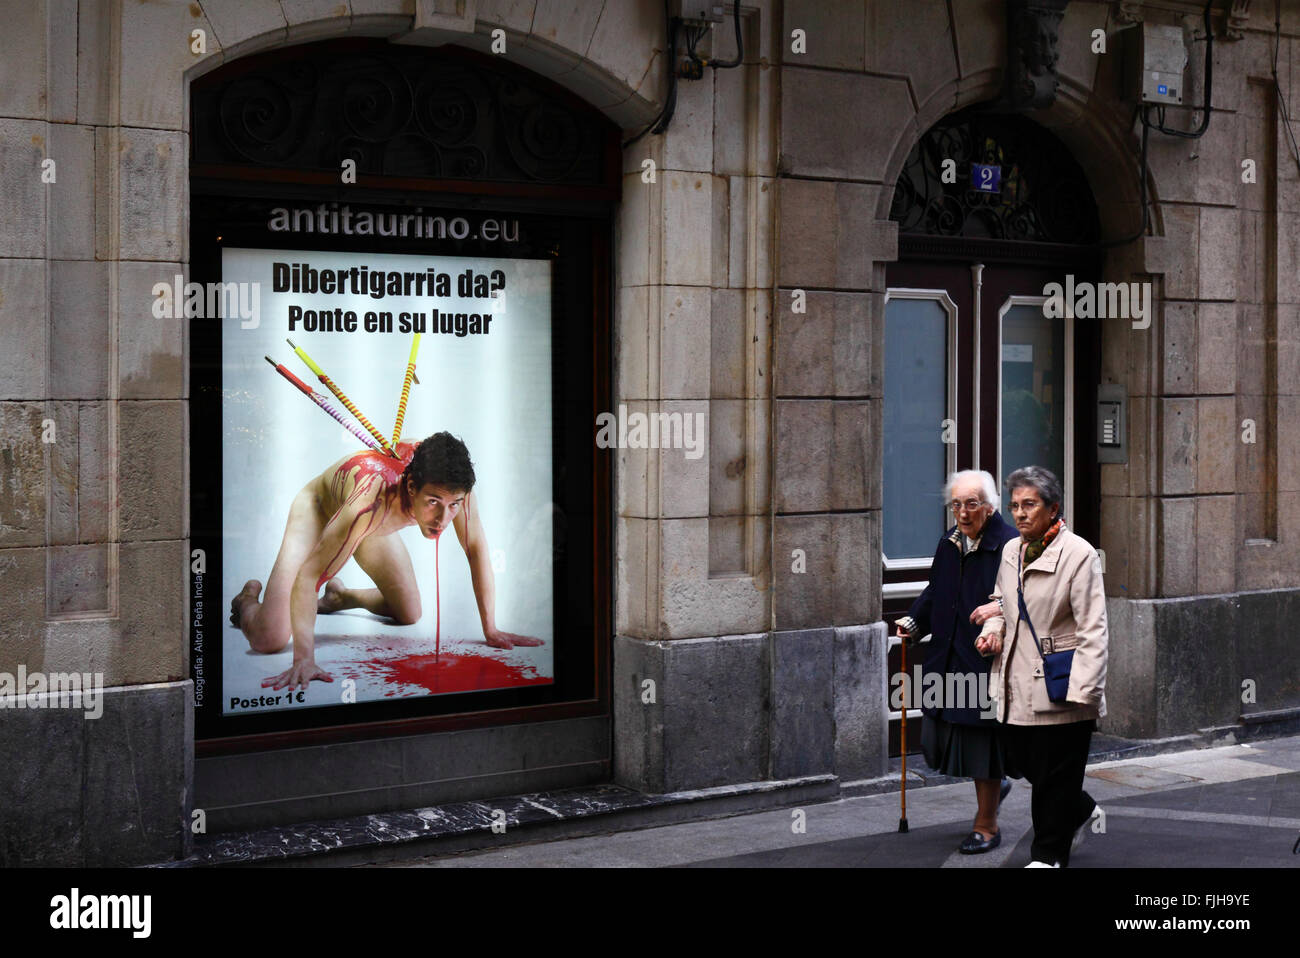 People walking past a poster in window protesting against bullfighting, Casco Viejo, Bilbao, Basque Country, Spain - Stock Image